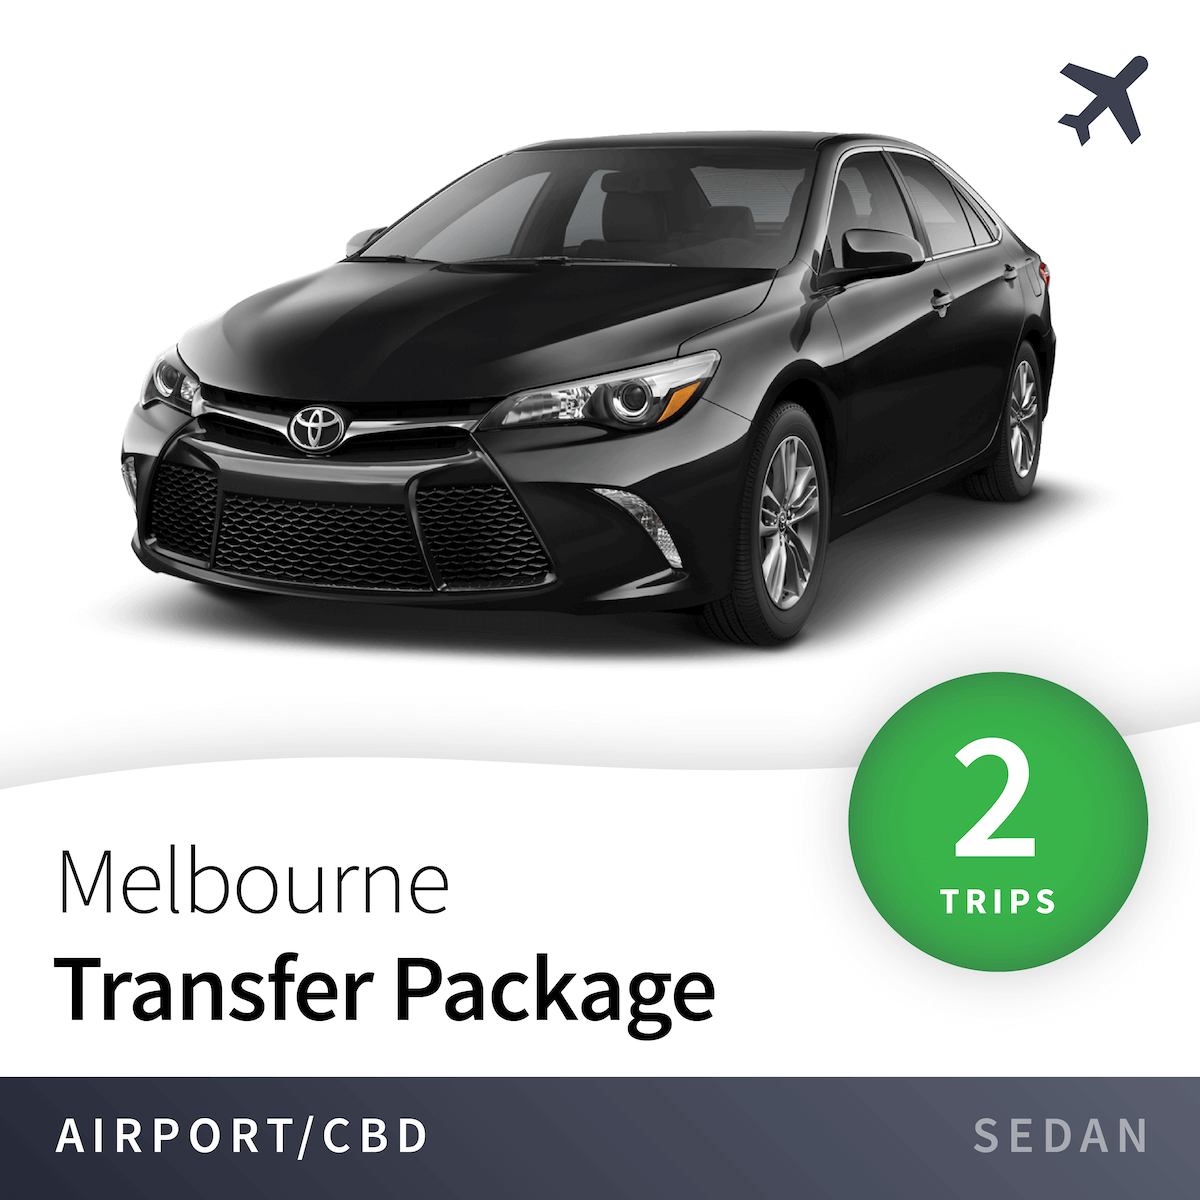 Melbourne Airport Transfer Package - Sedan (2 Trips) 5